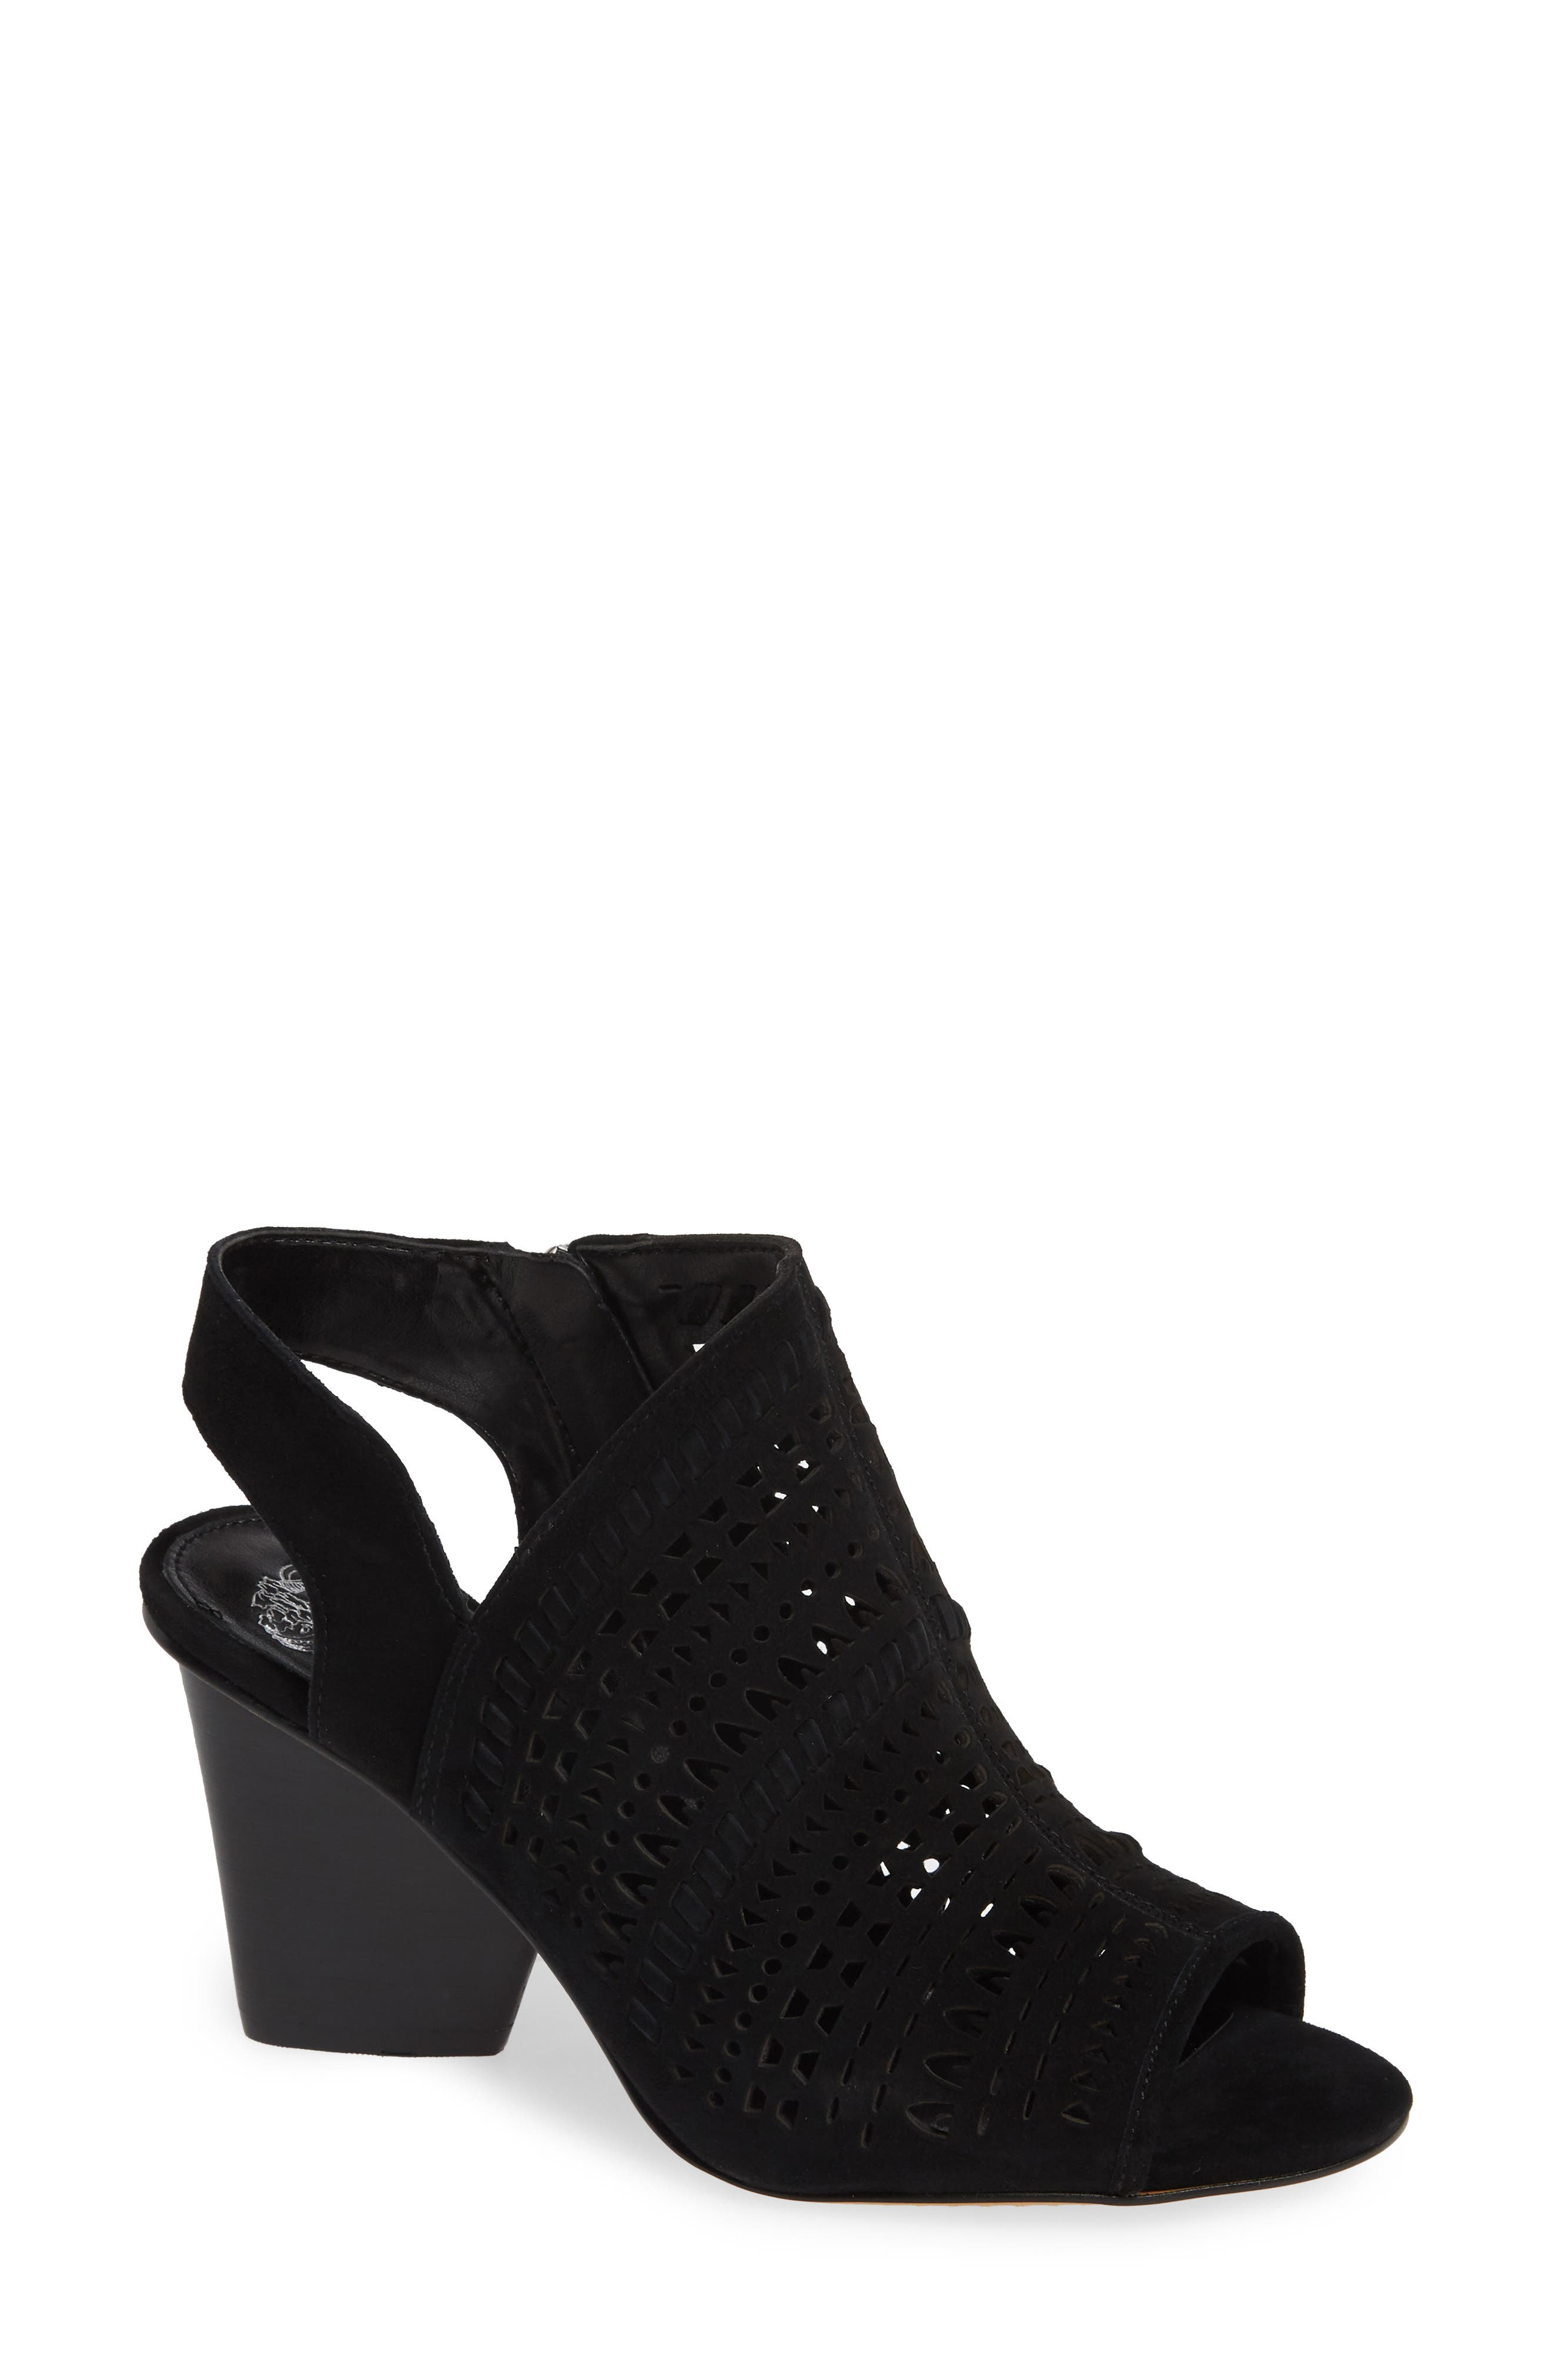 VINCE CAMUTO, Derechie Perforated Shield Sandal, Main thumbnail 1, color, BLACK SUEDE